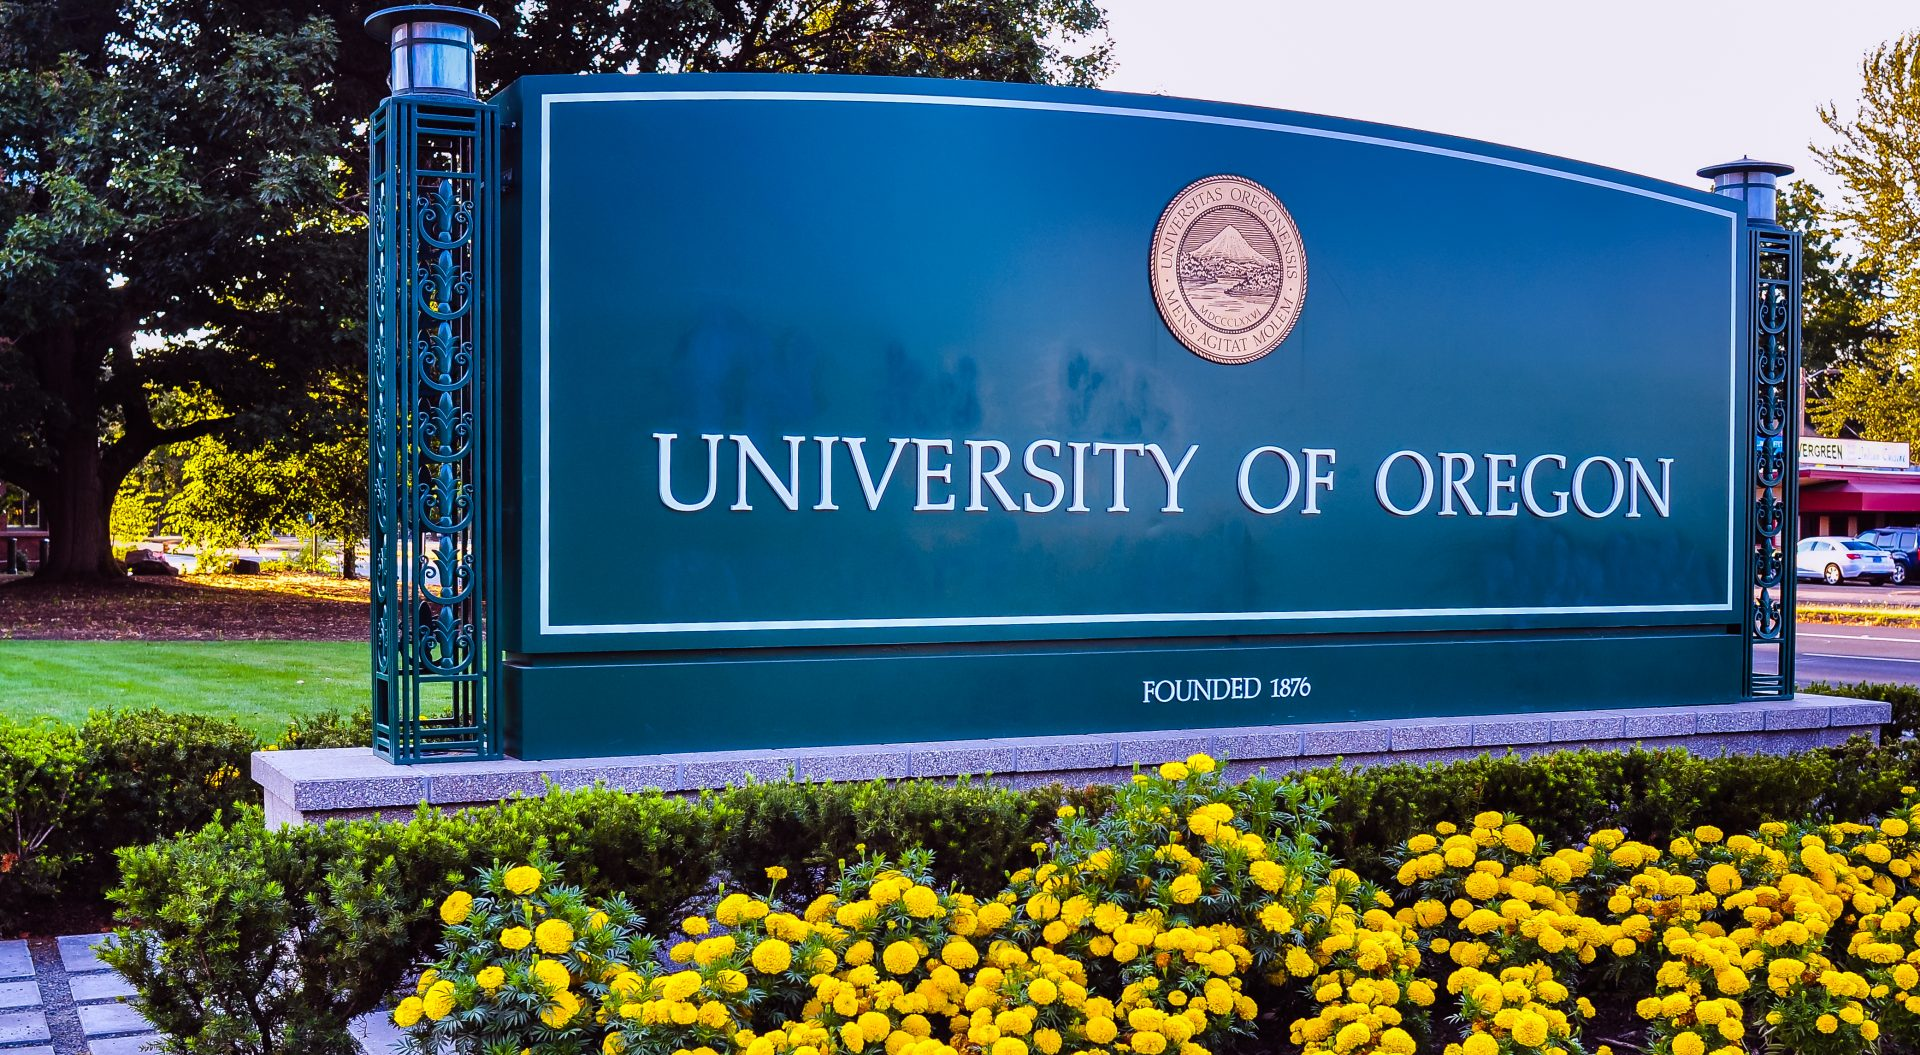 University of Oregon cancels in-person finals due to coronavirus